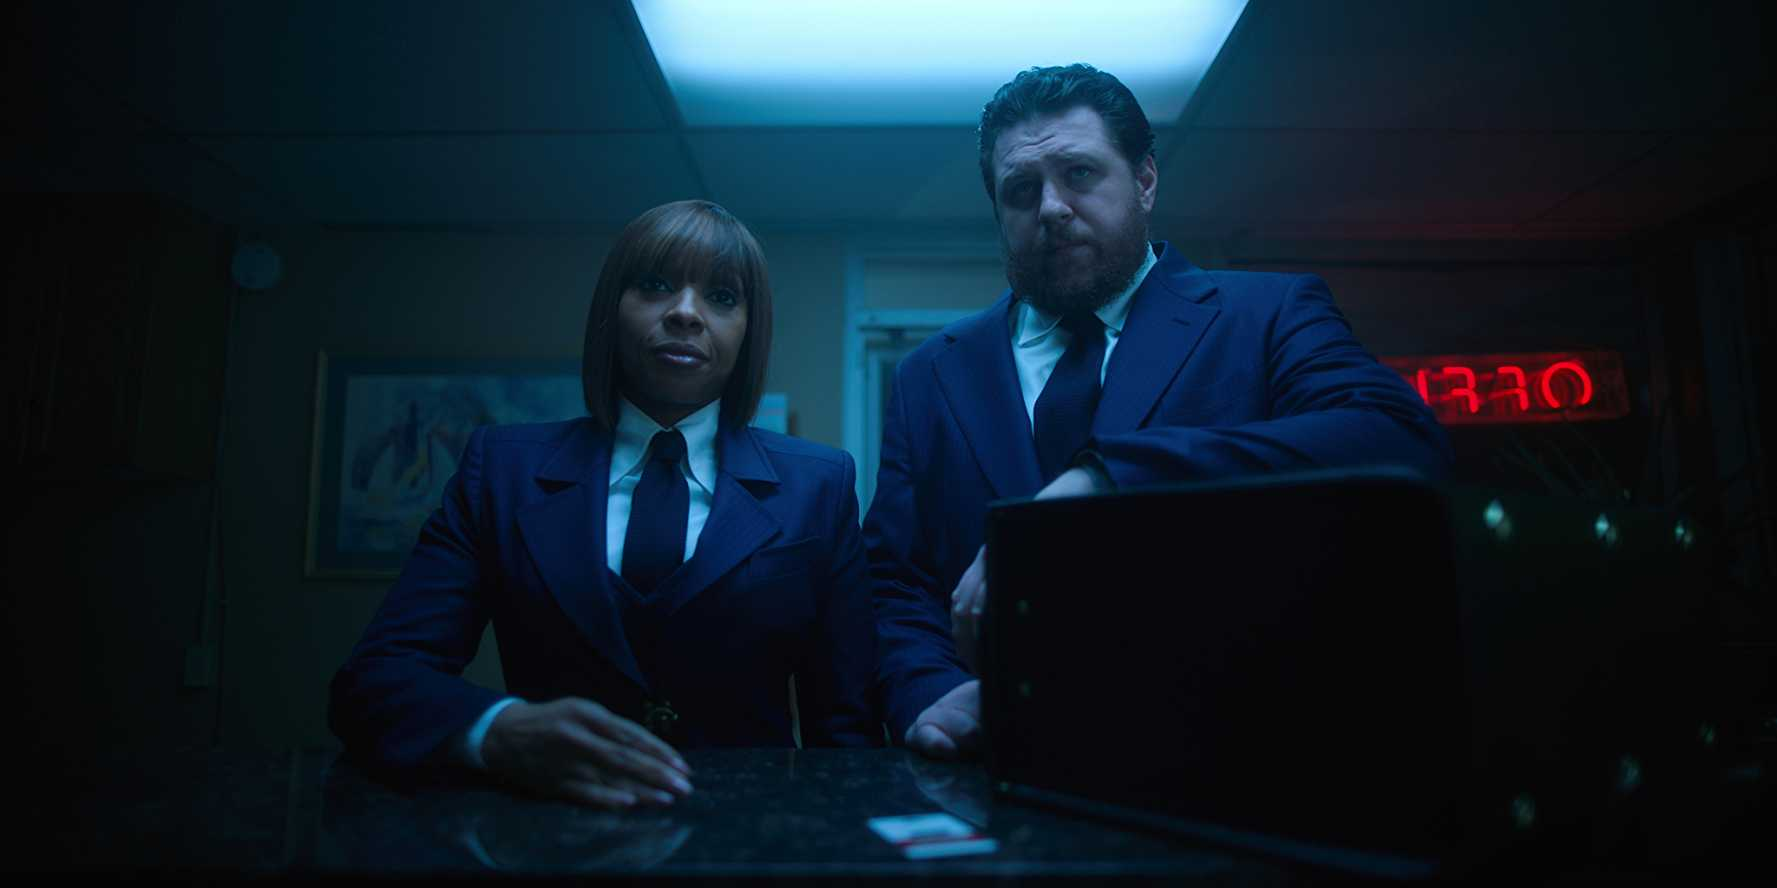 Cha-Cha and Hazel in 'The Umbrella Academy'. (Source: IMDB)